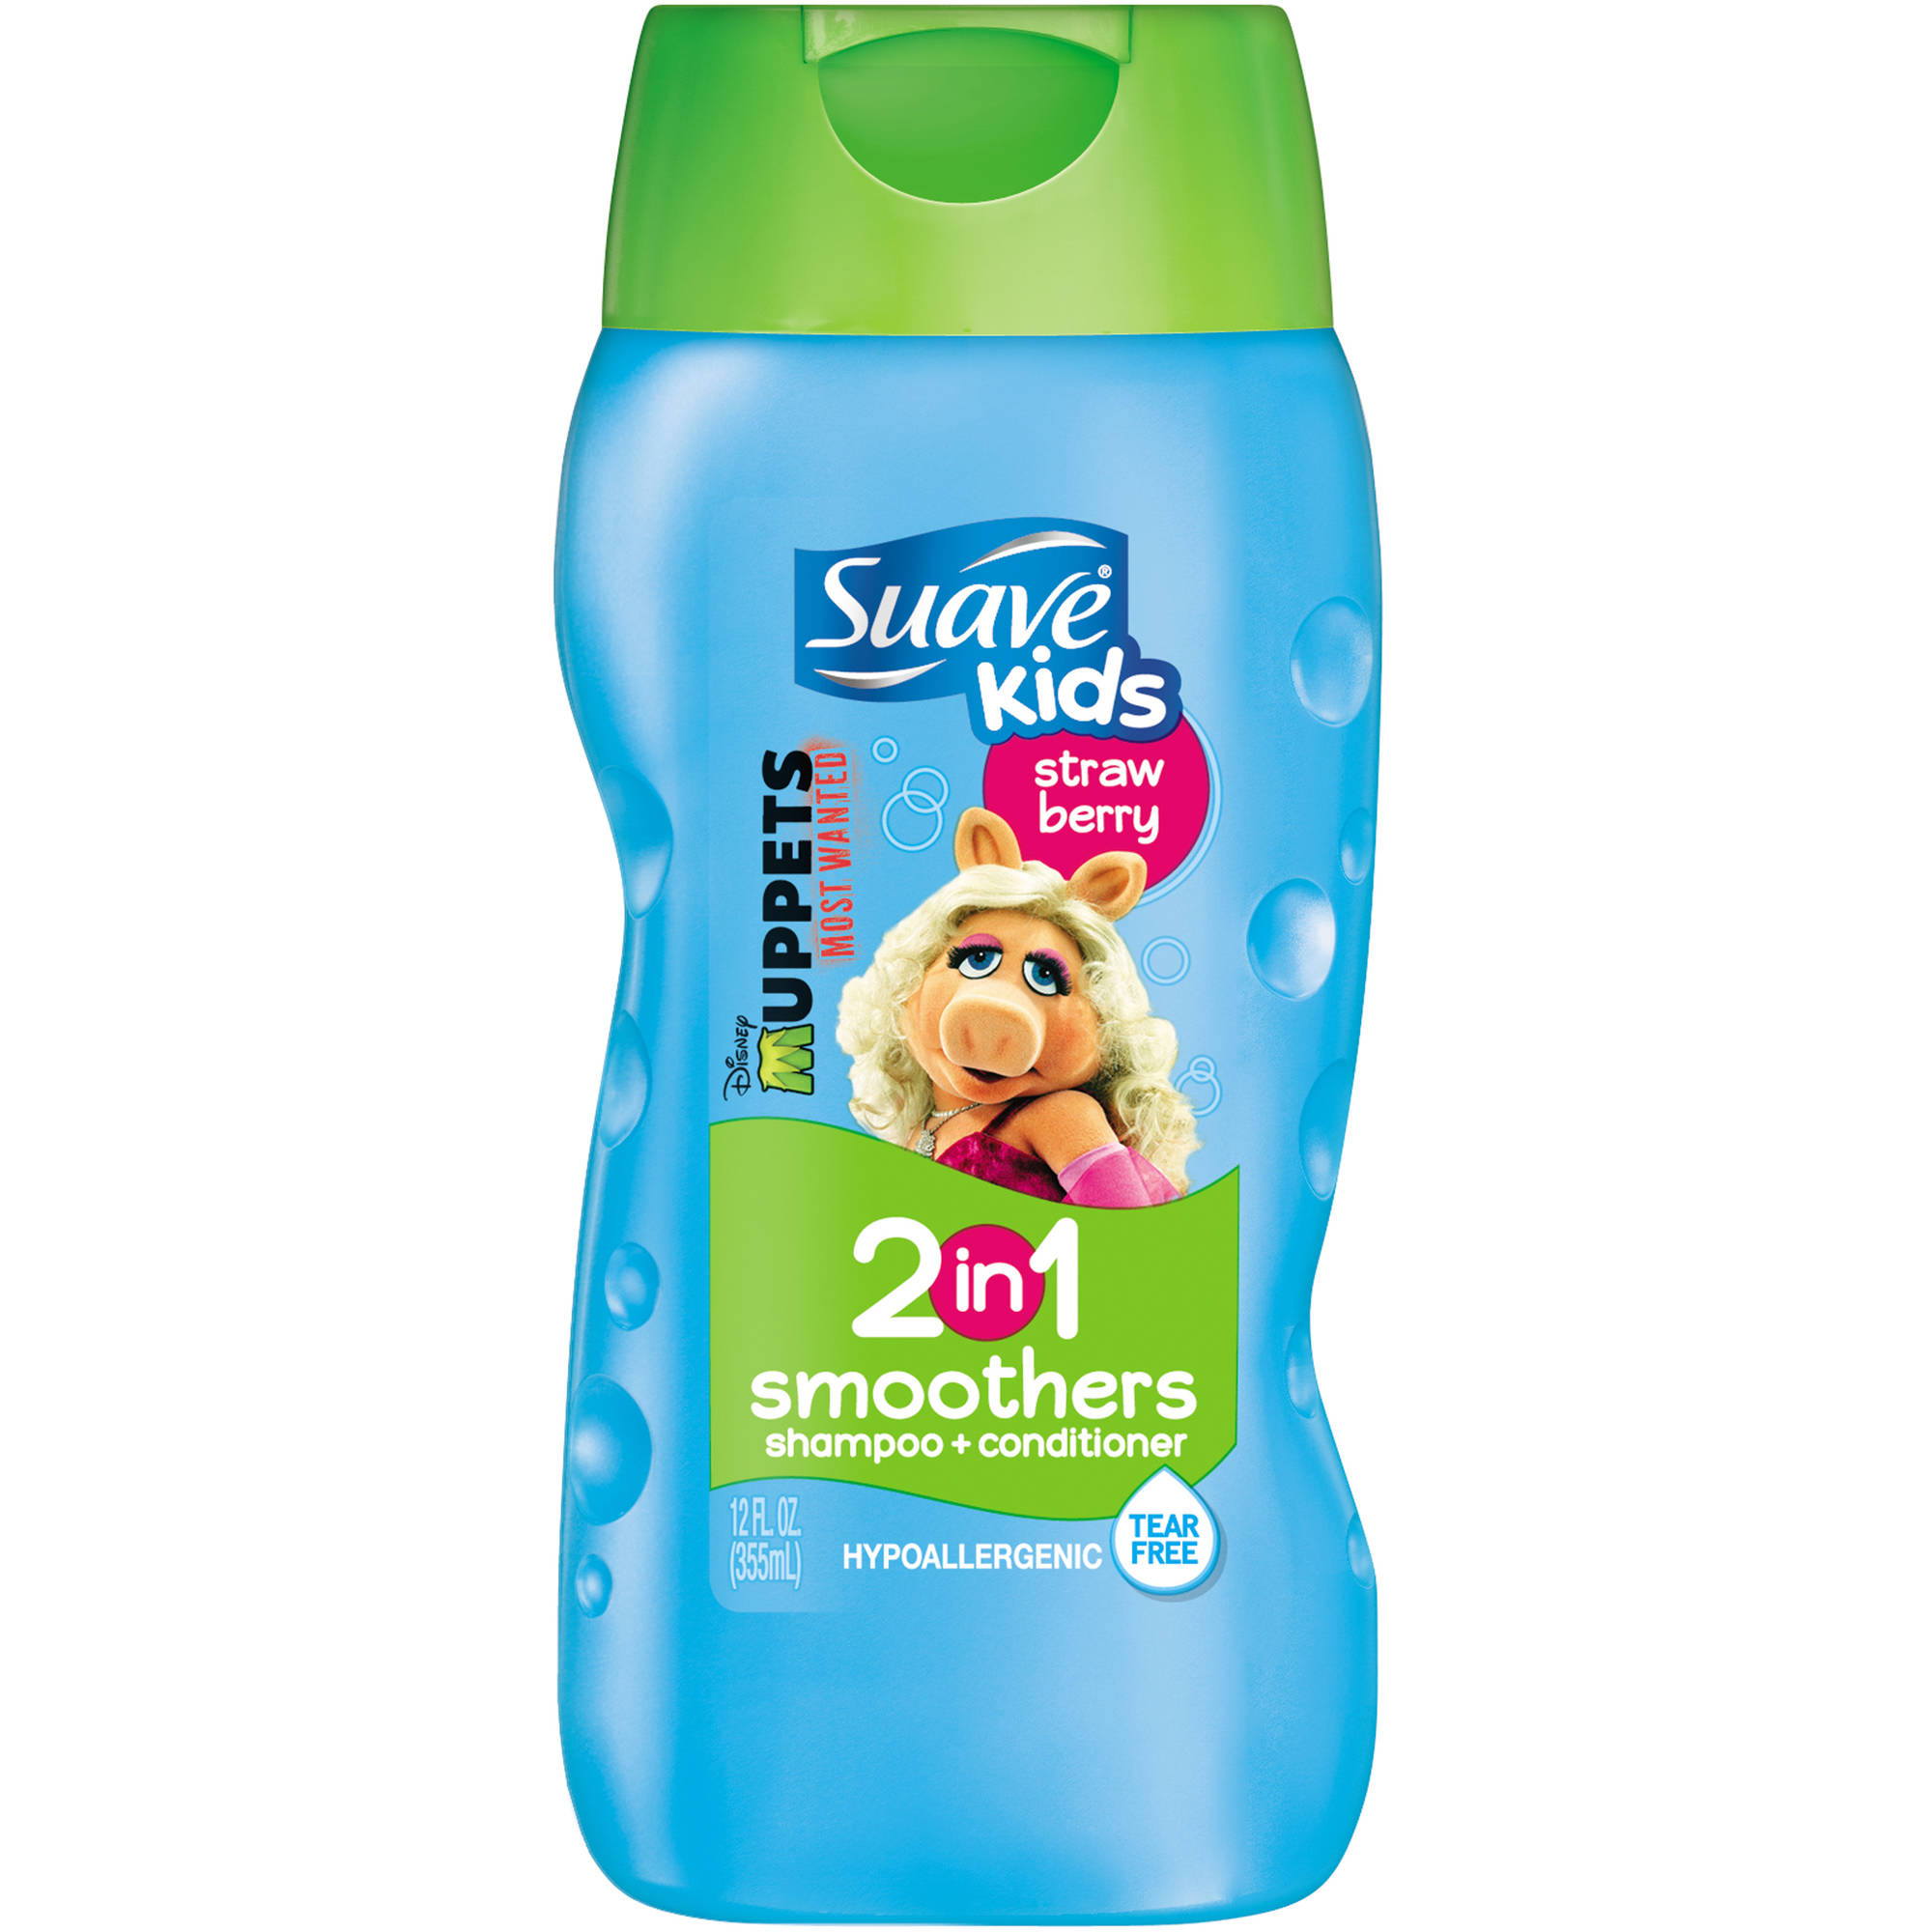 Suave Kids Strawberry Smoothers 2 in 1 Shampoo + Conditioner, 12 fl oz